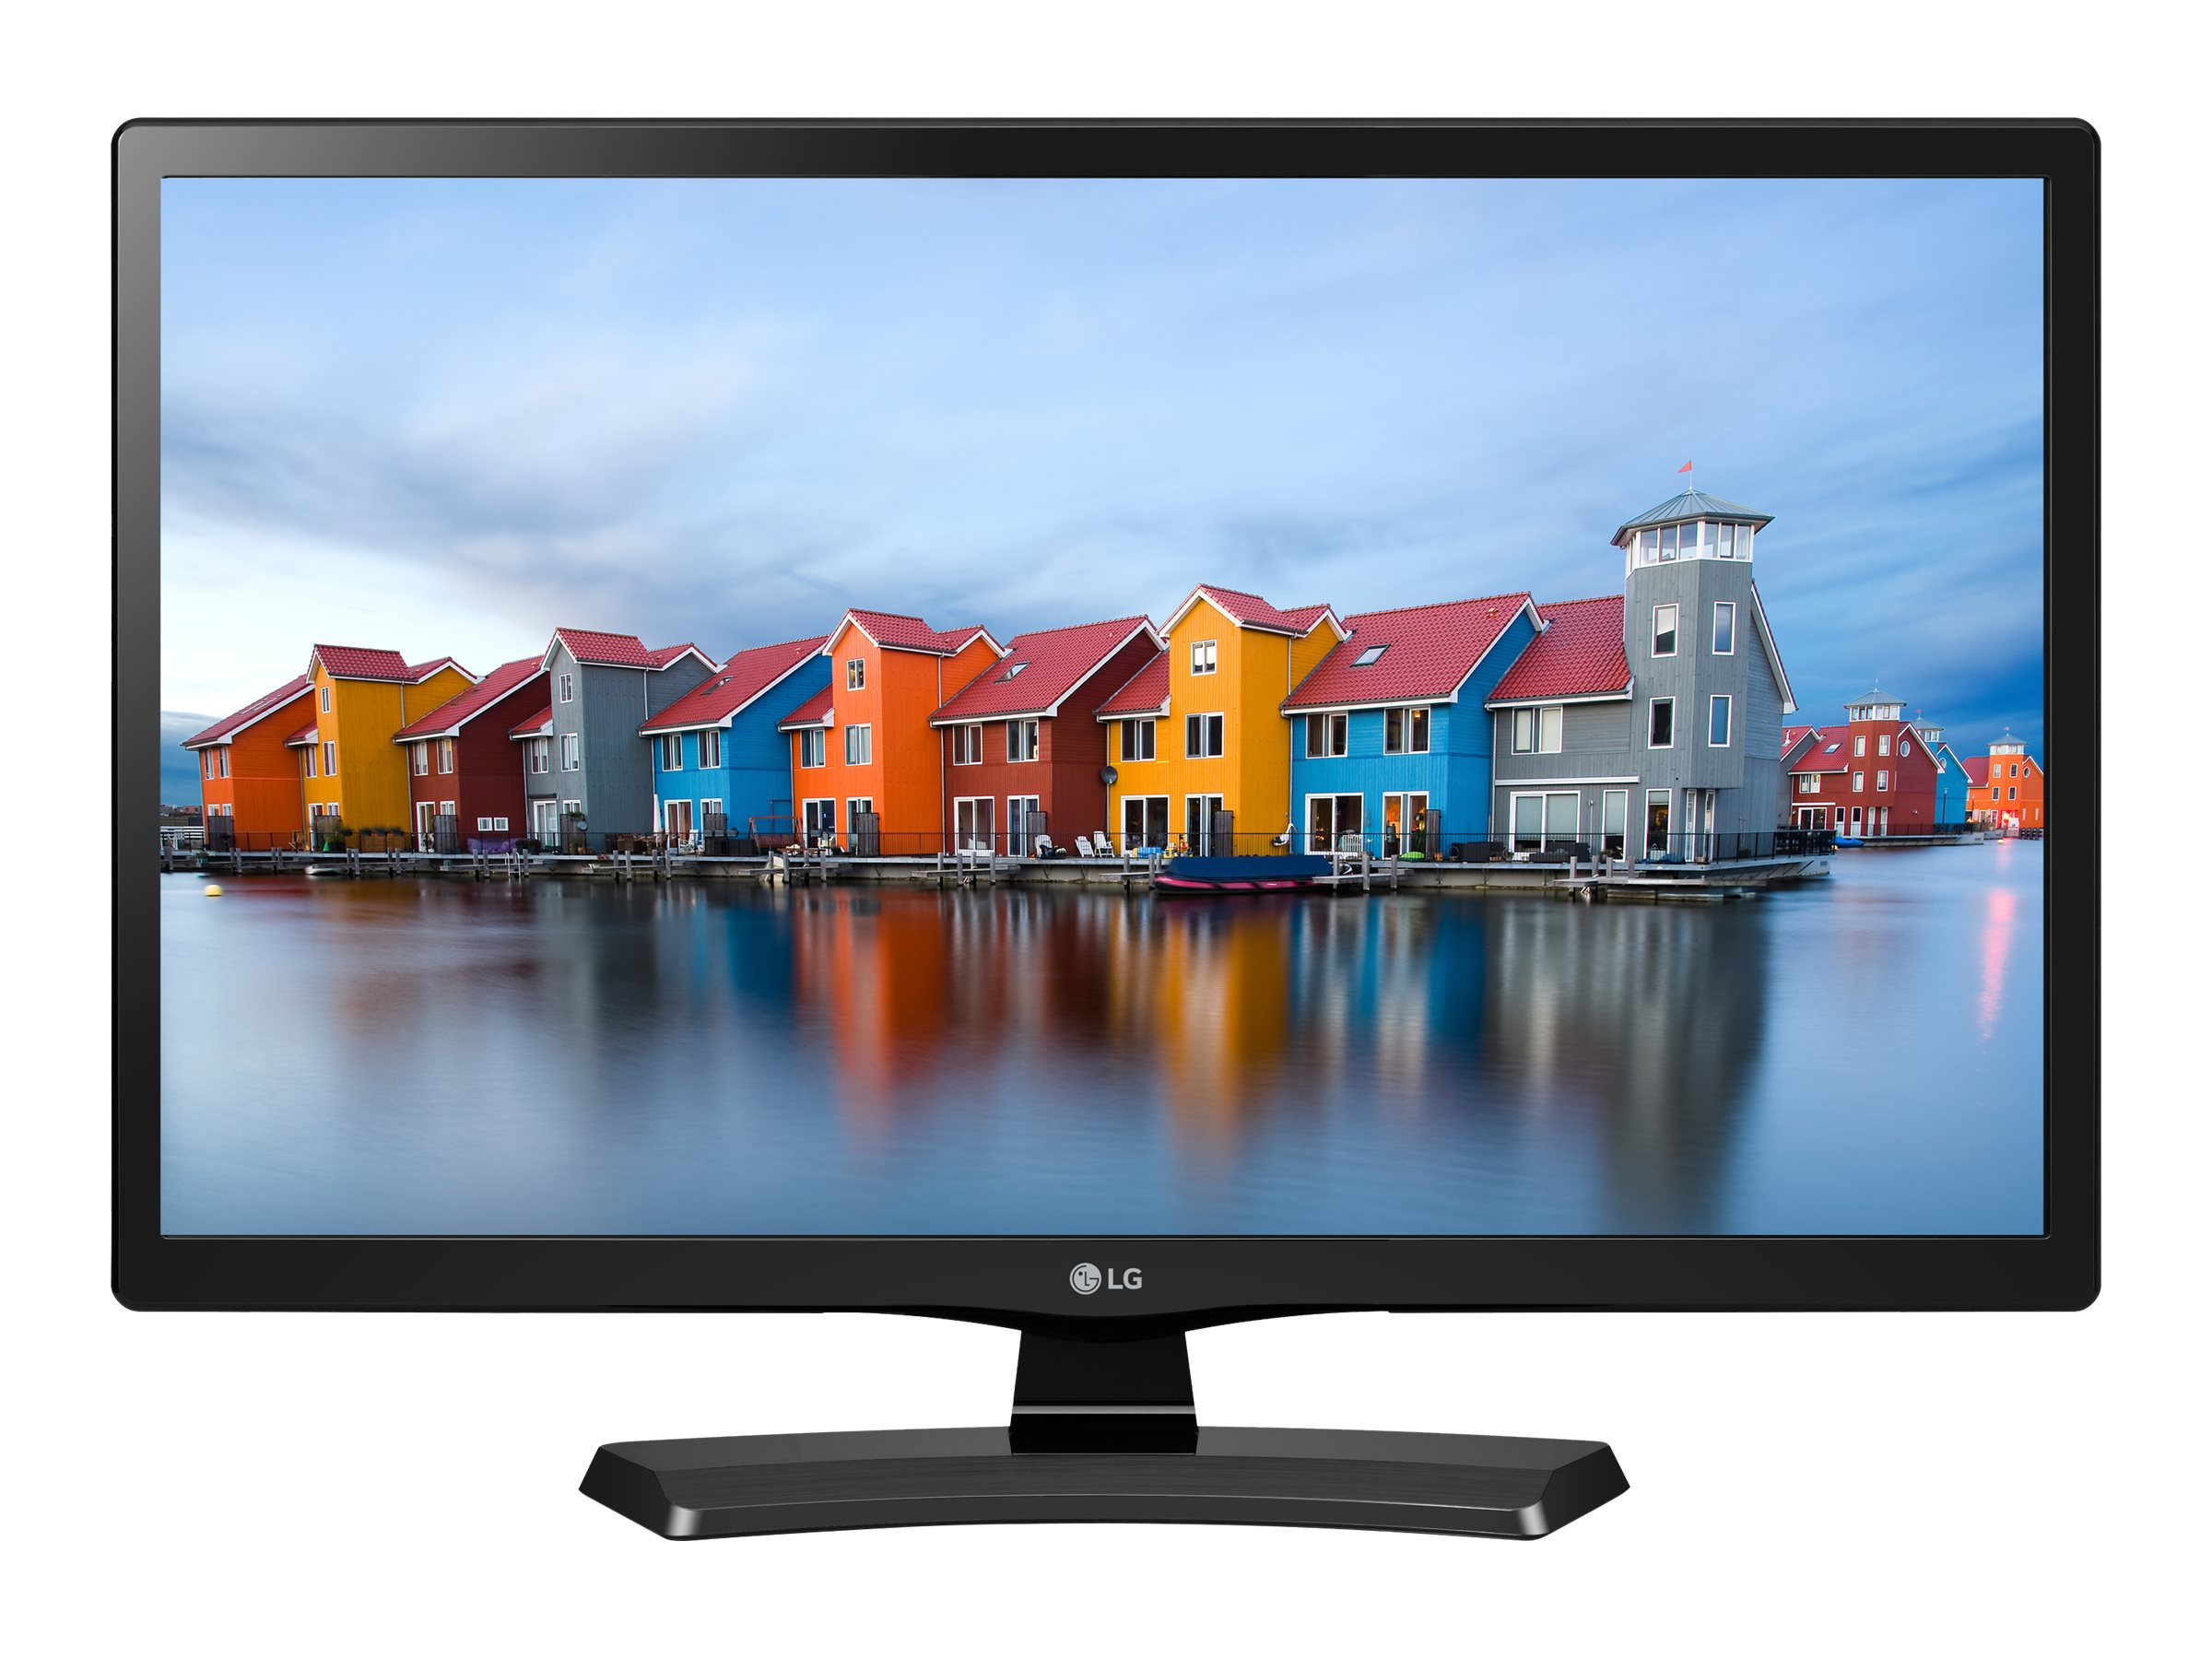 LG 21.5 LH4530 Full HD LED-LCD TV, Black